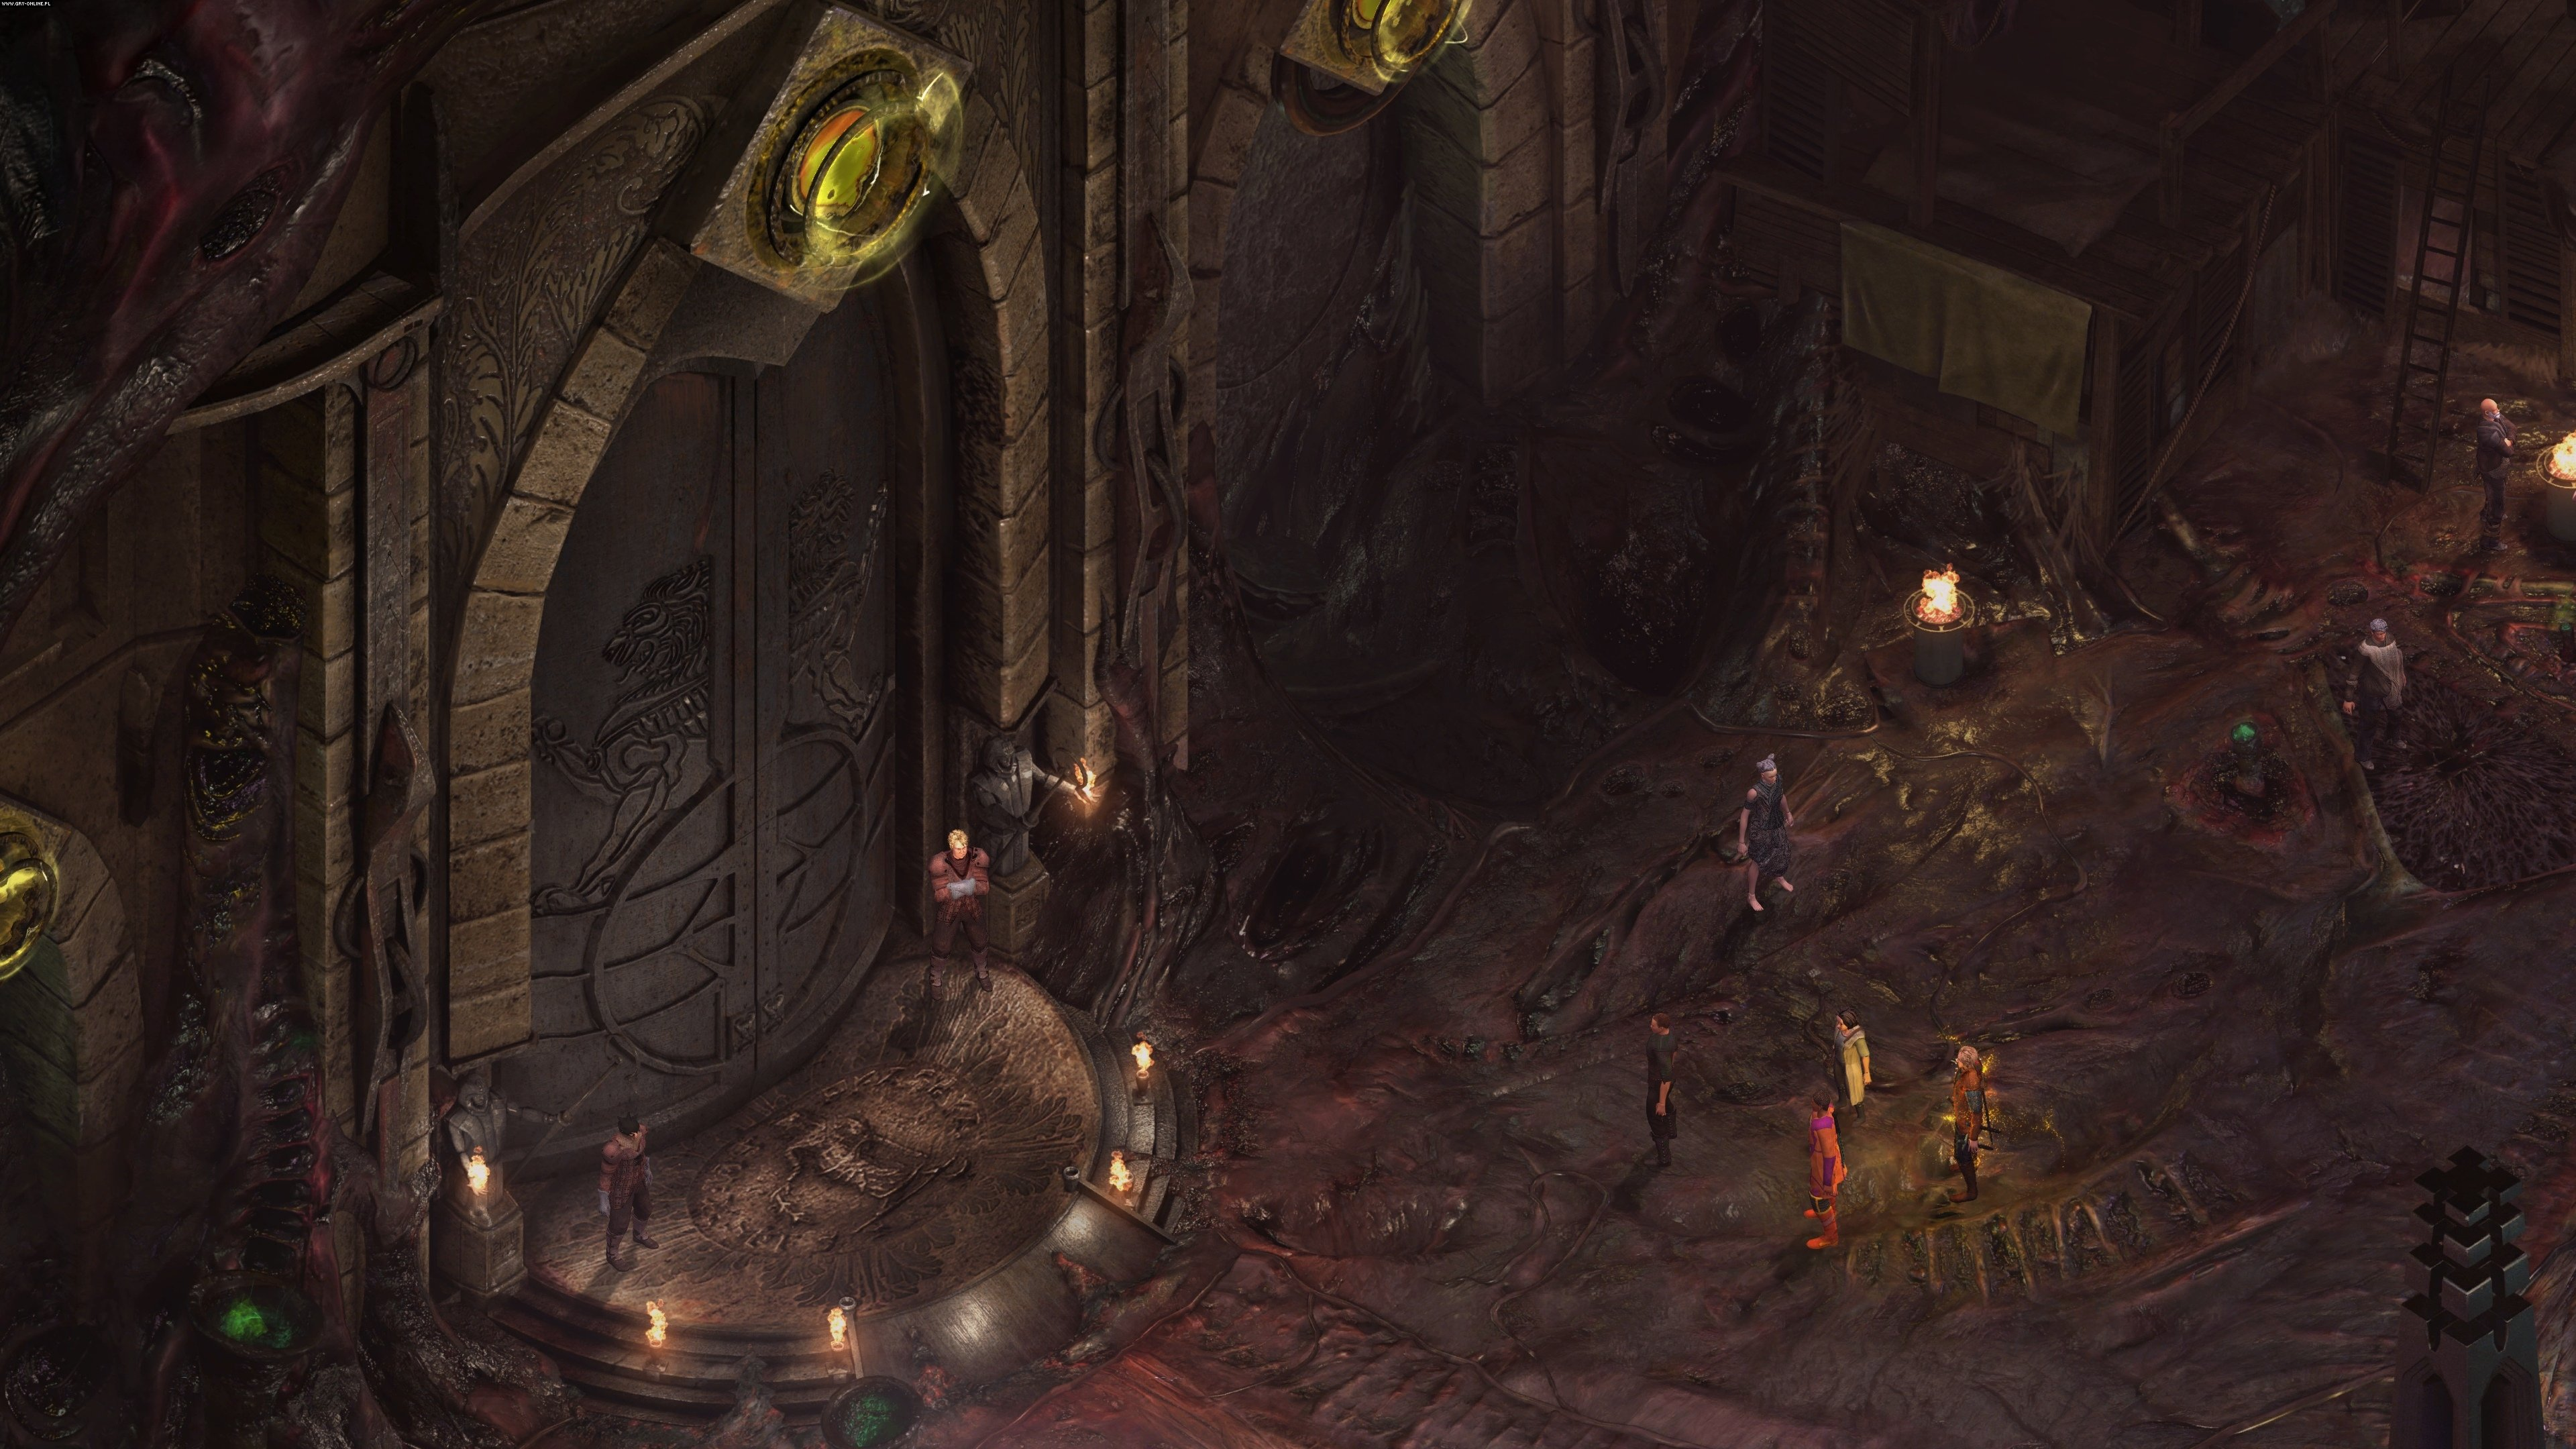 Torment: Tides of Numenera PC Games Image 4/28, inXile entertainment, Techland